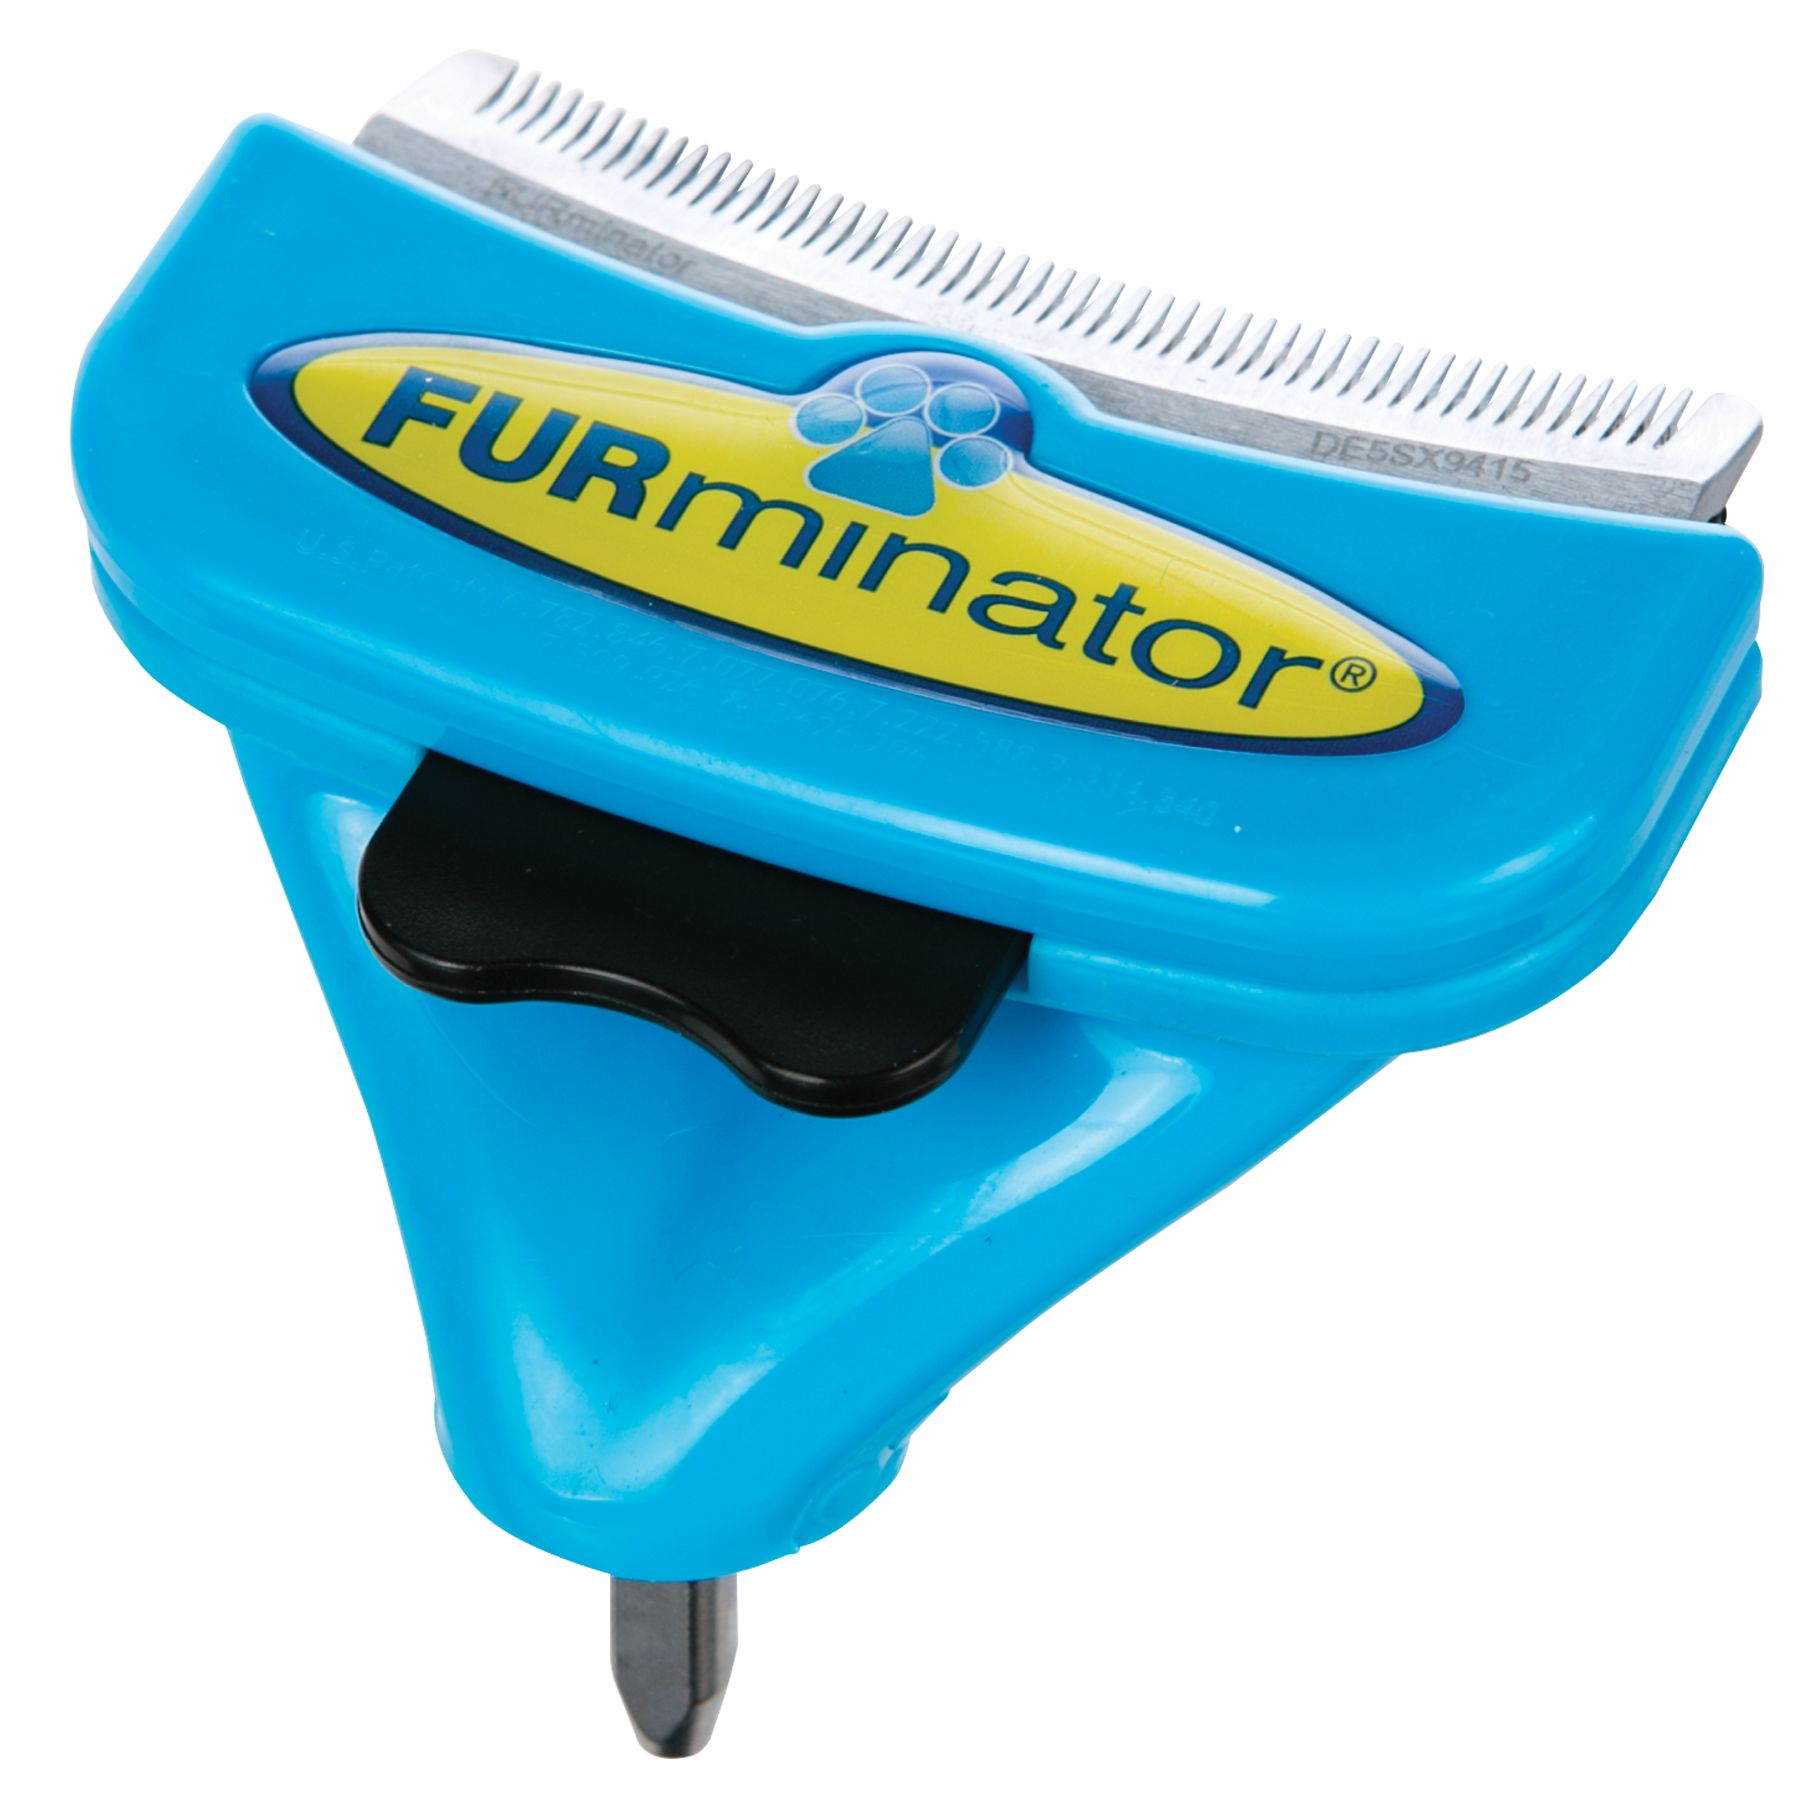 FURminator FURflex, Comfort Edge Contoured Head deShedding Dog Tool size: Medium 5238738